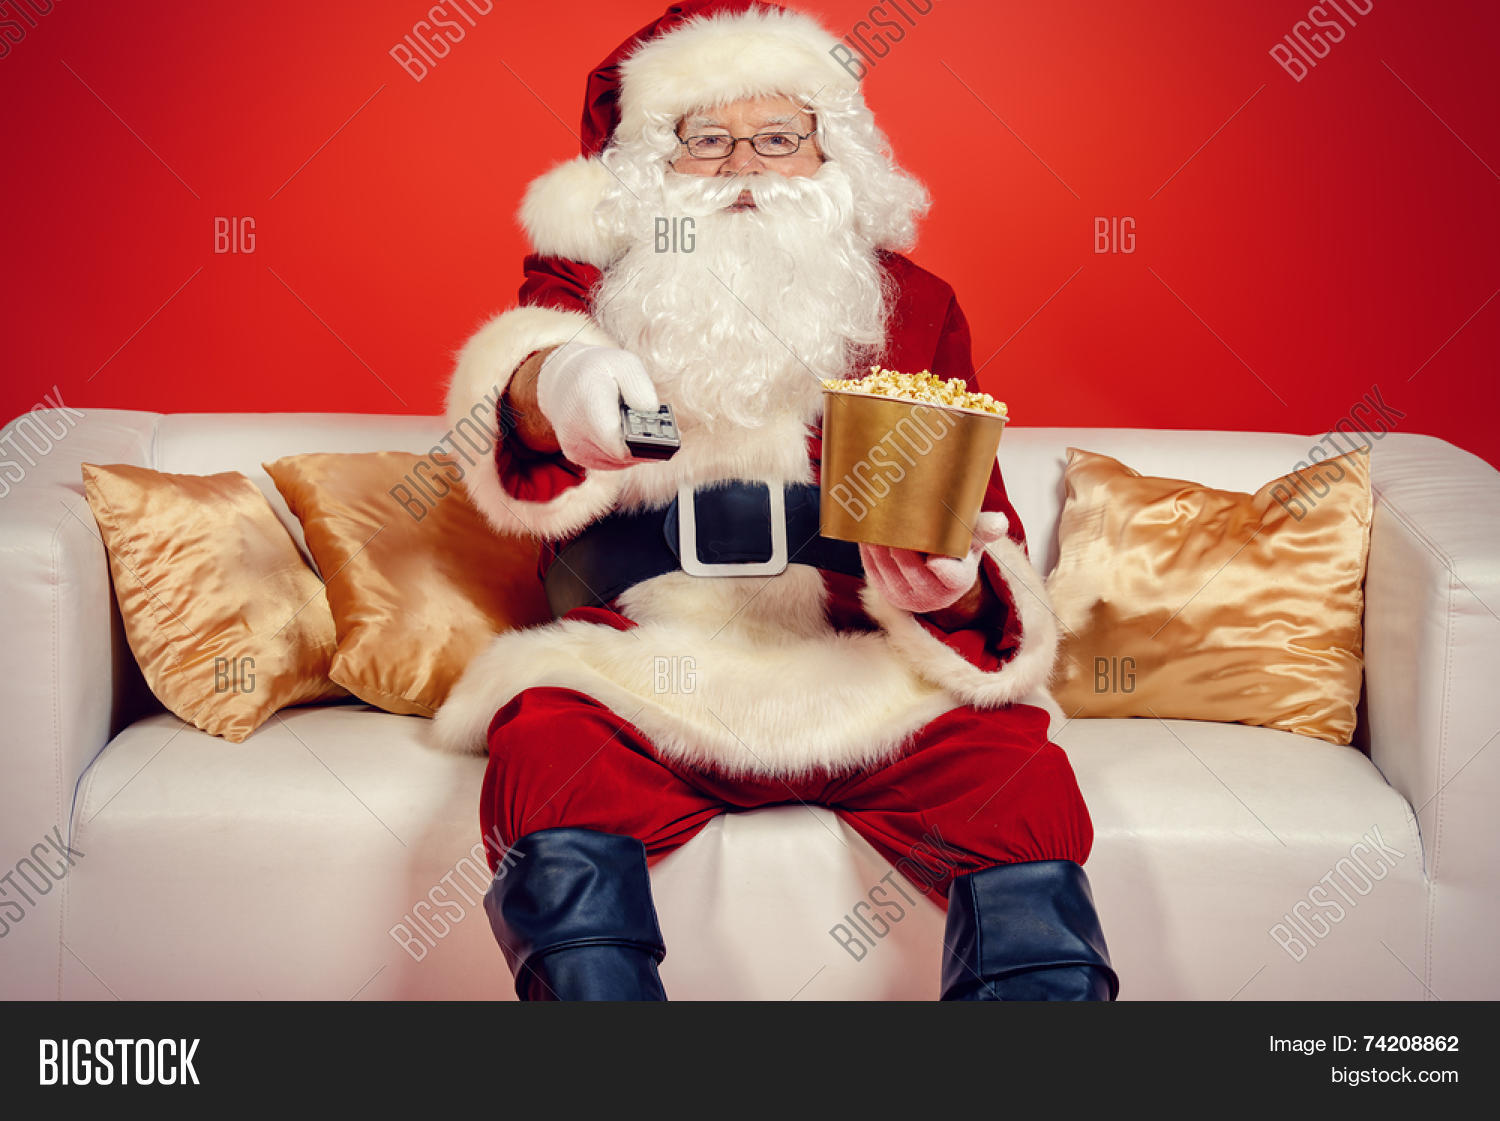 Traditional santa claus sitting on image photo bigstock